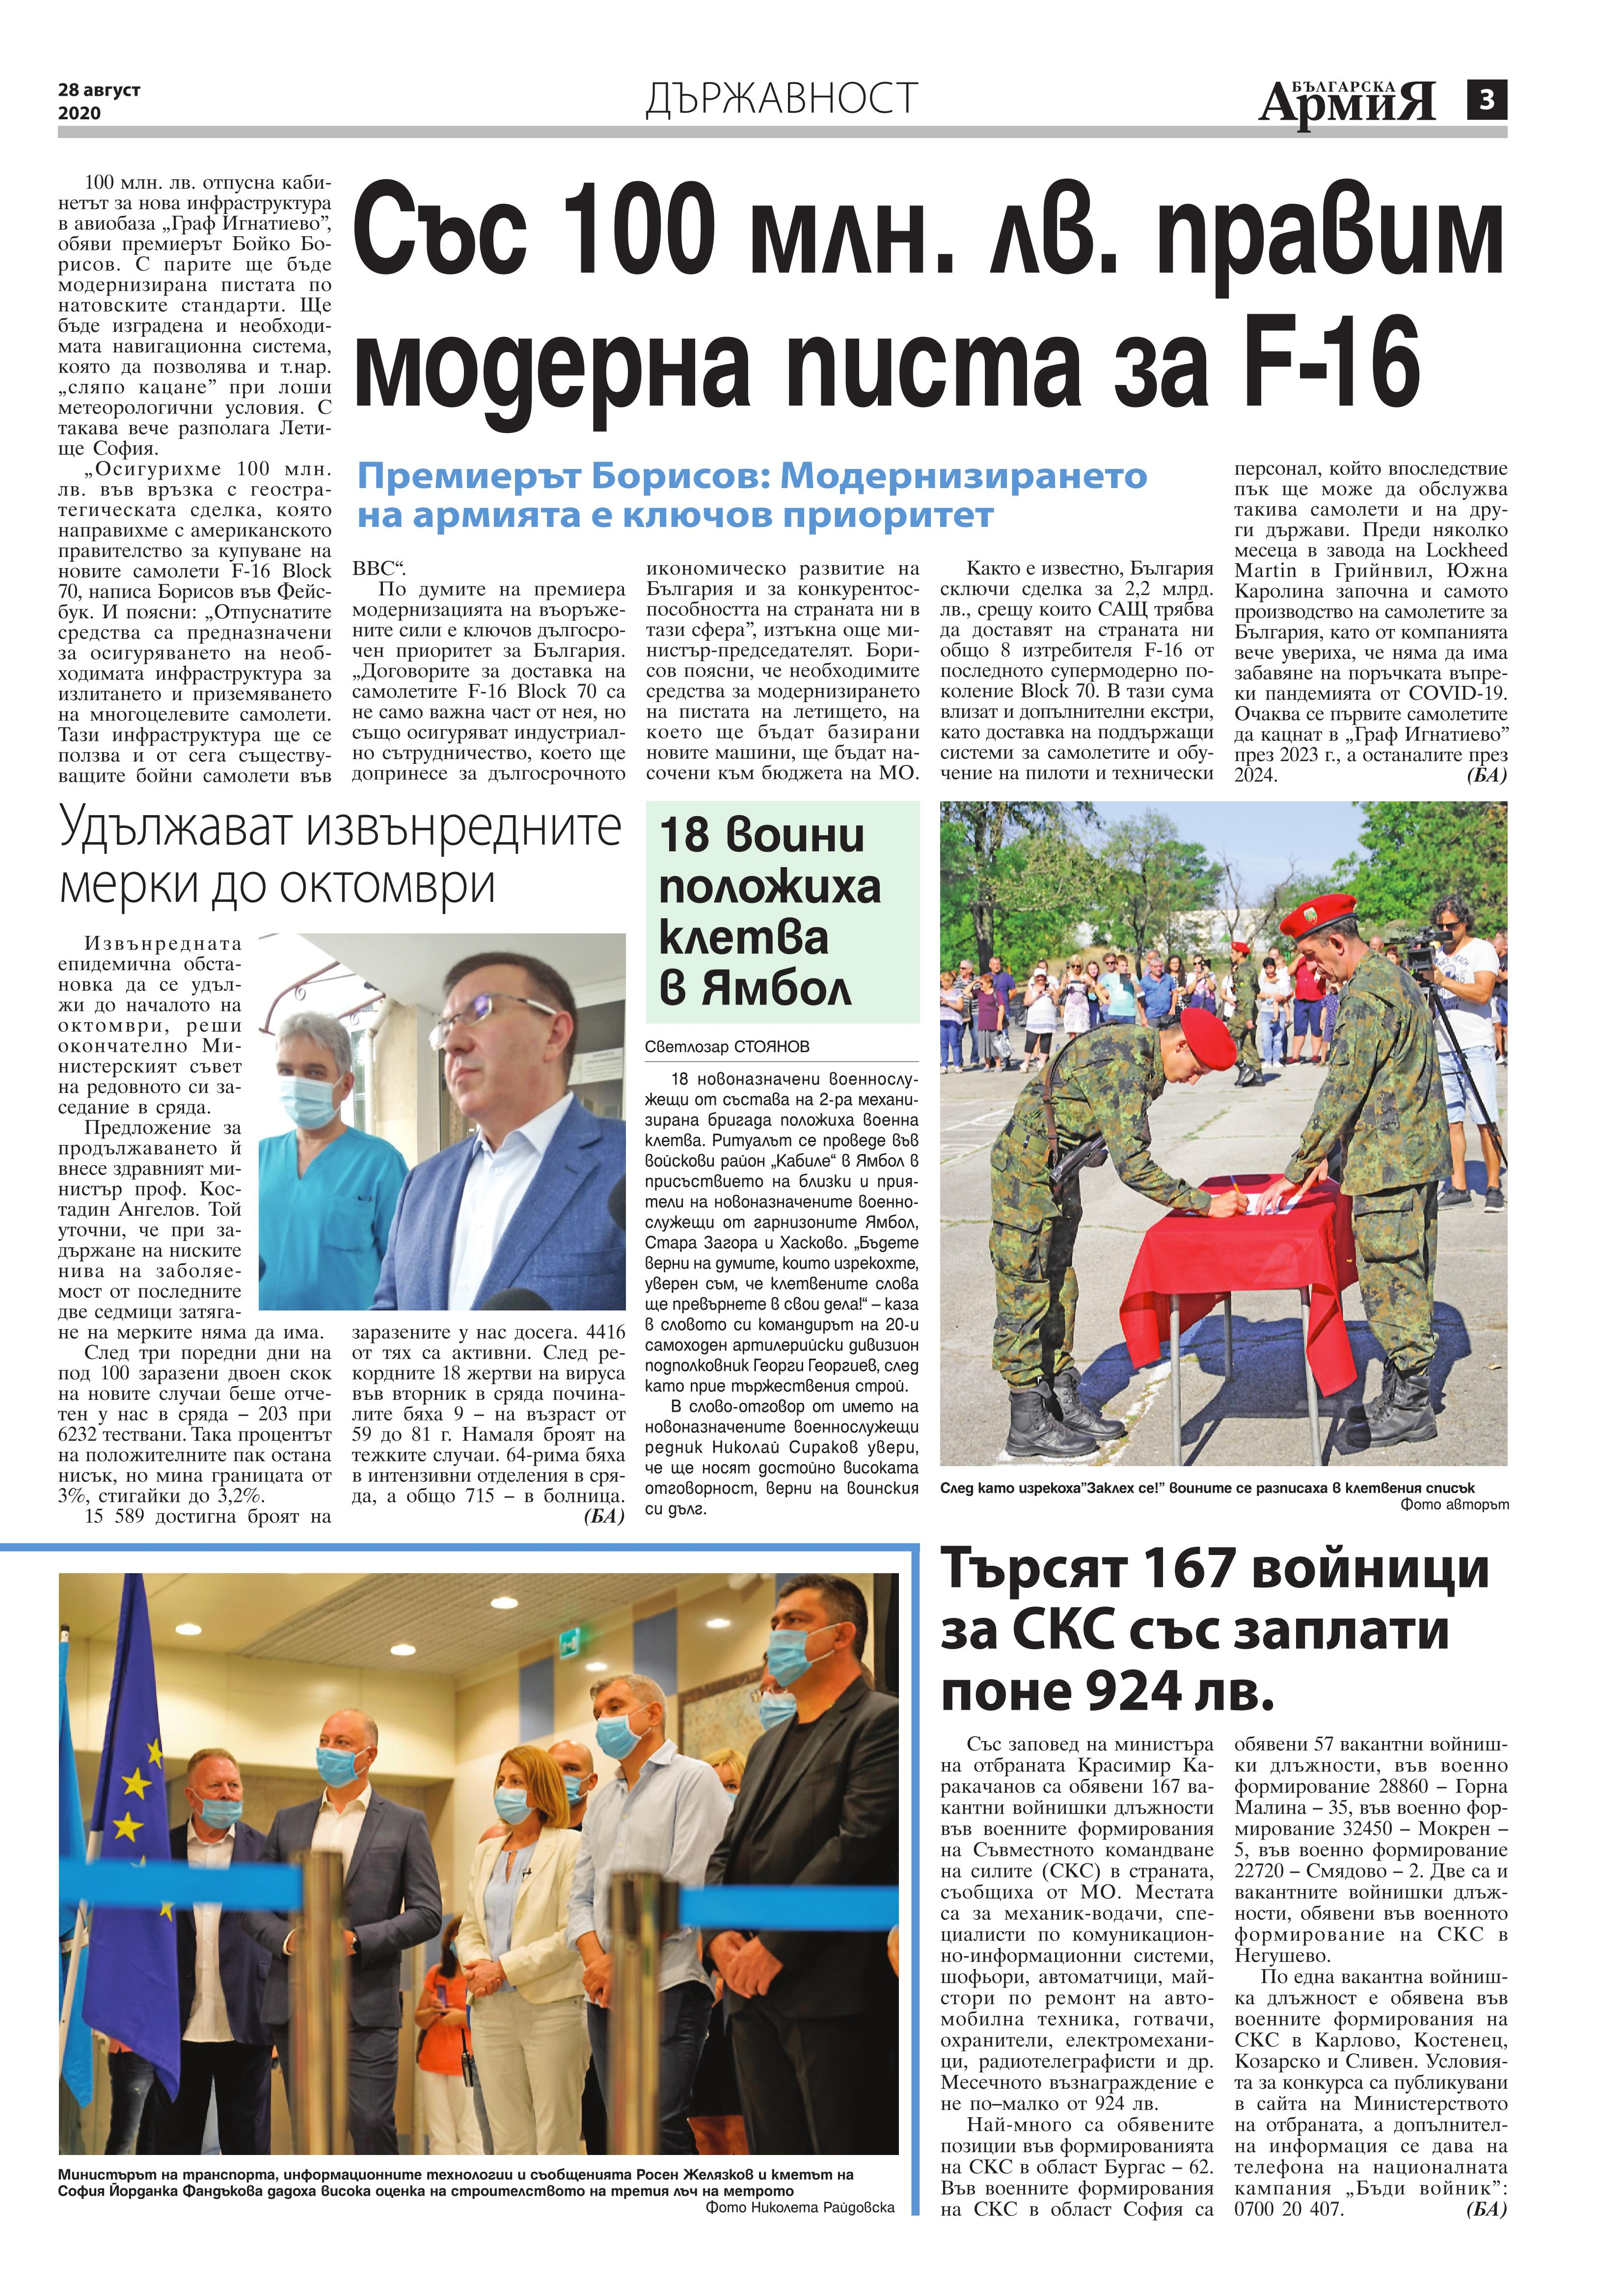 https://armymedia.bg/wp-content/uploads/2015/06/03.page1_-148.jpg